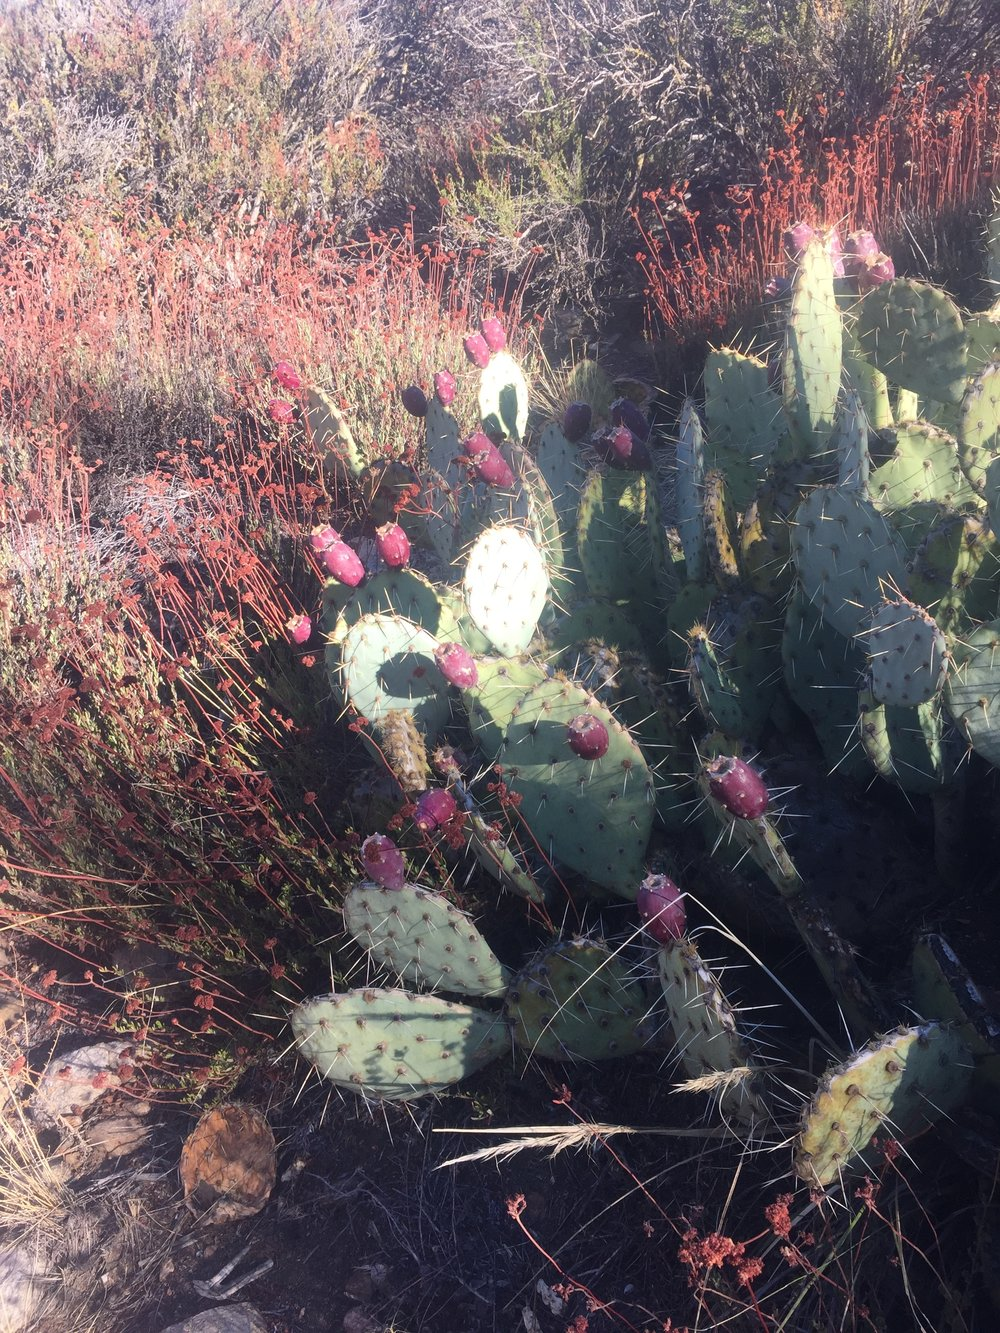 These prickly pears have an amazingly wide range through SoCal ecosystems